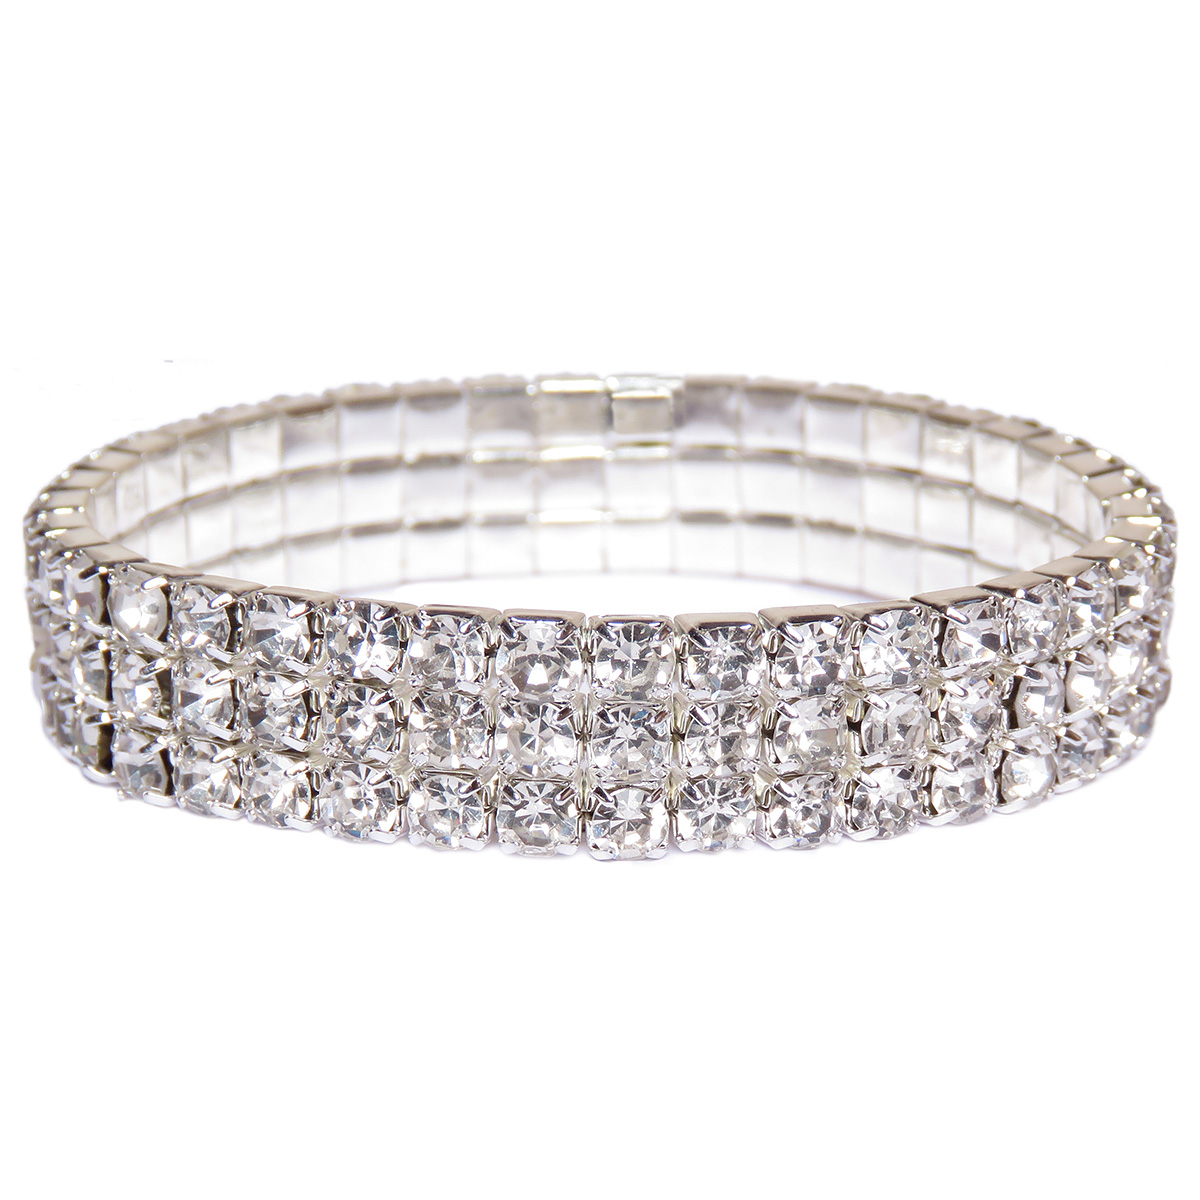 Silver_Crystal_Tennis_Bracelets_for_Women_Three_Layer_Rhinestone_Jewelry